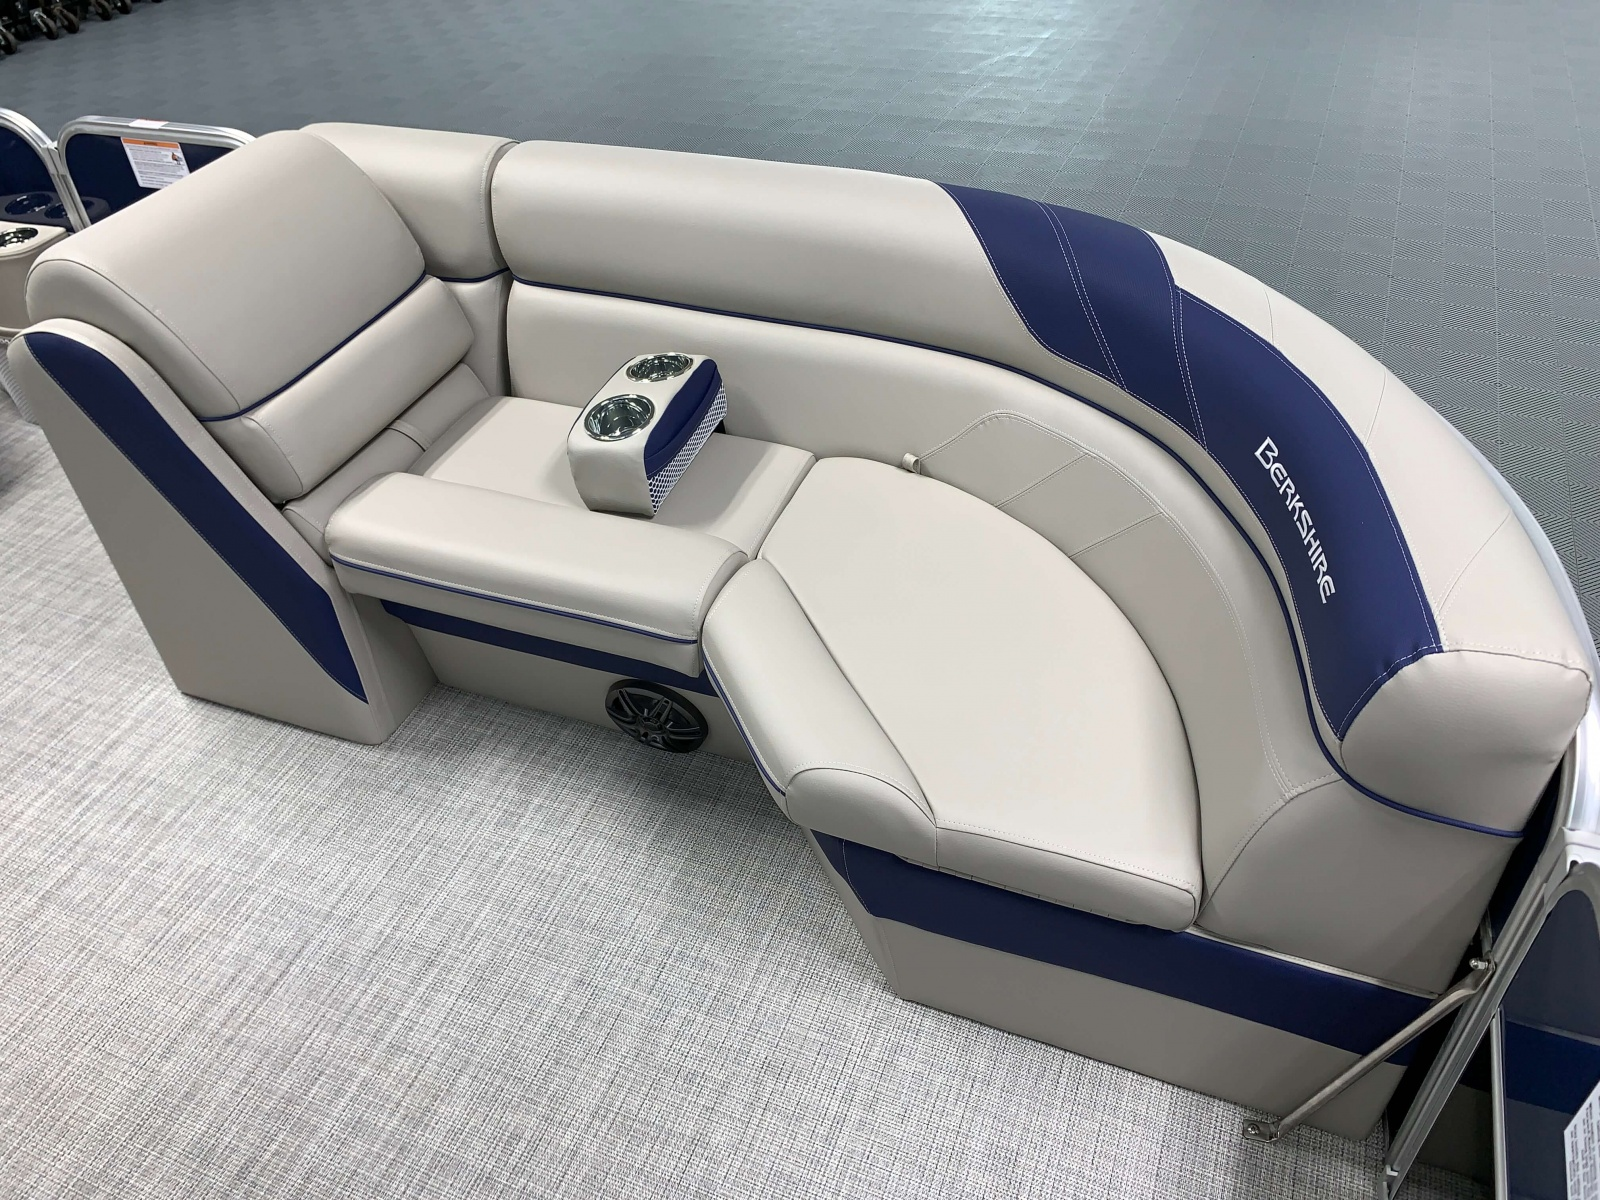 Navy Blue Accented Interior on the 2021 Berkshire 24RFX LE Pontoon Boat